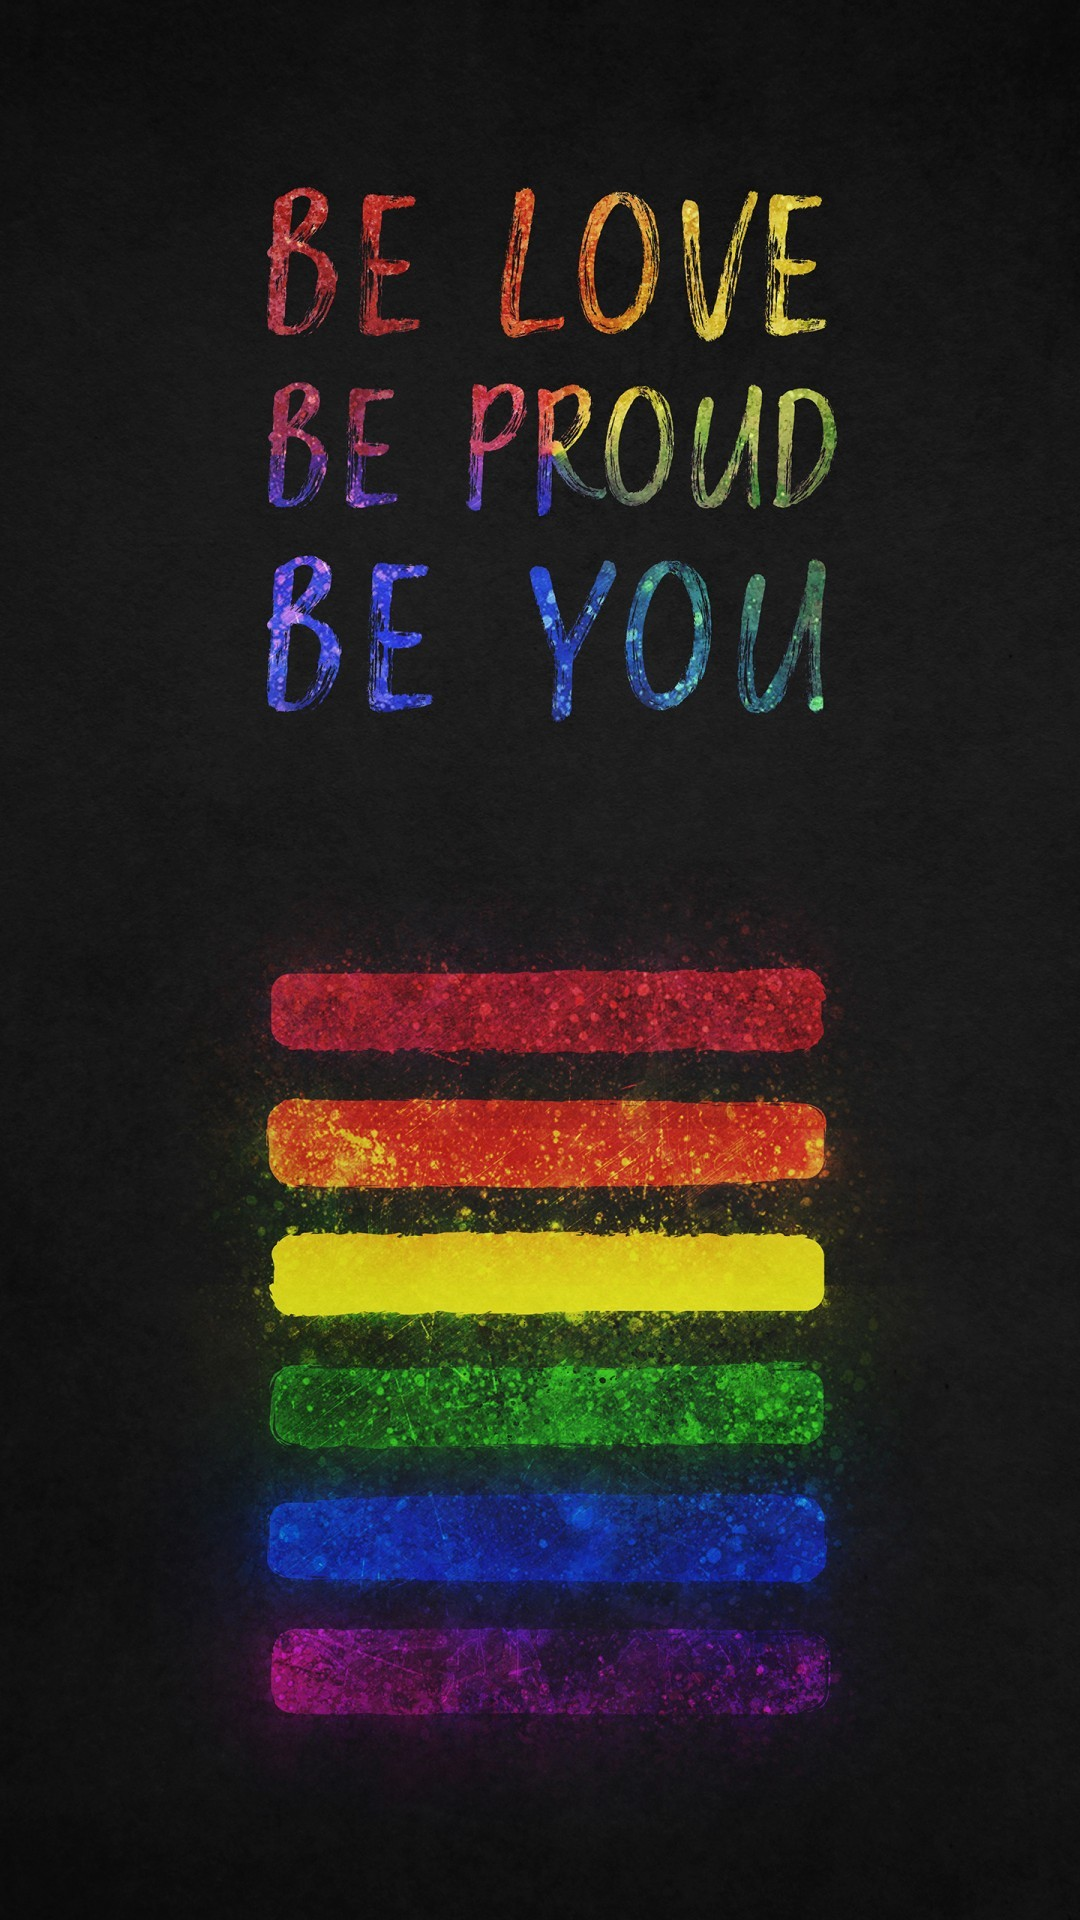 Free Be Love Be Proud Be You Quotes phone wallpaper by dvous